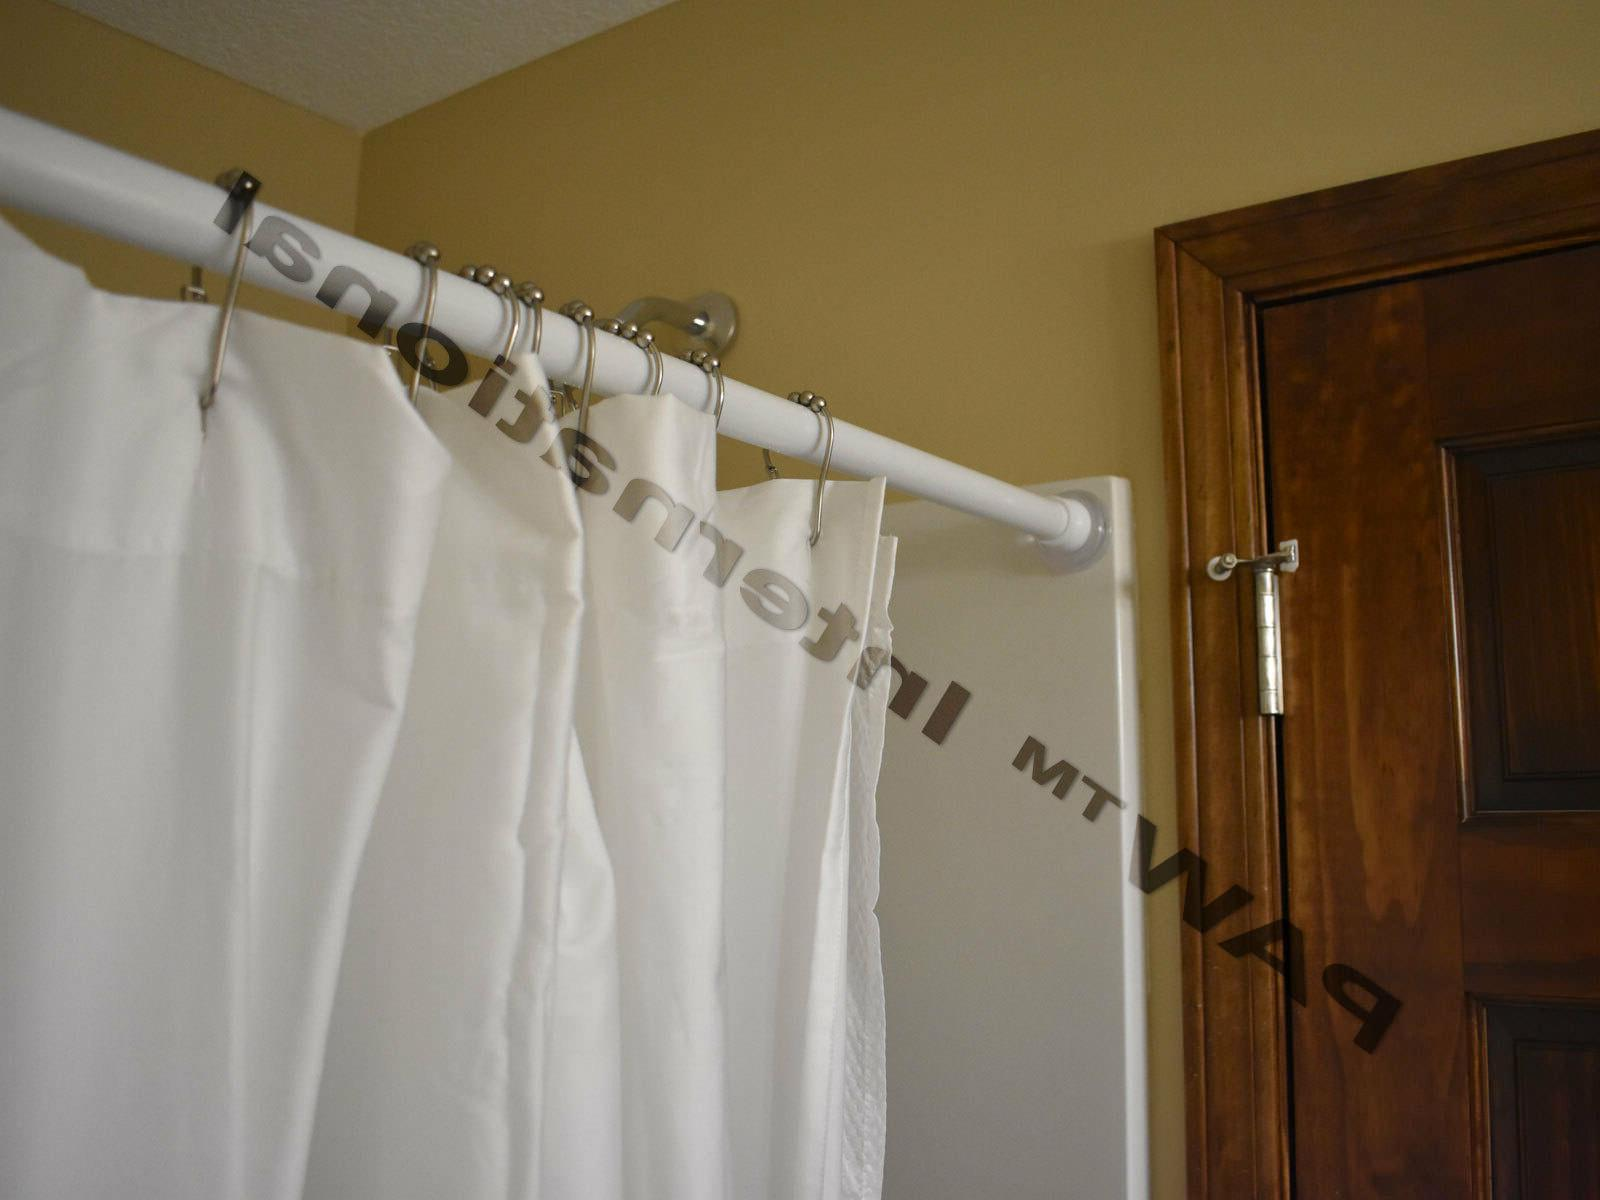 Shower Rod Holder Support By Paw International